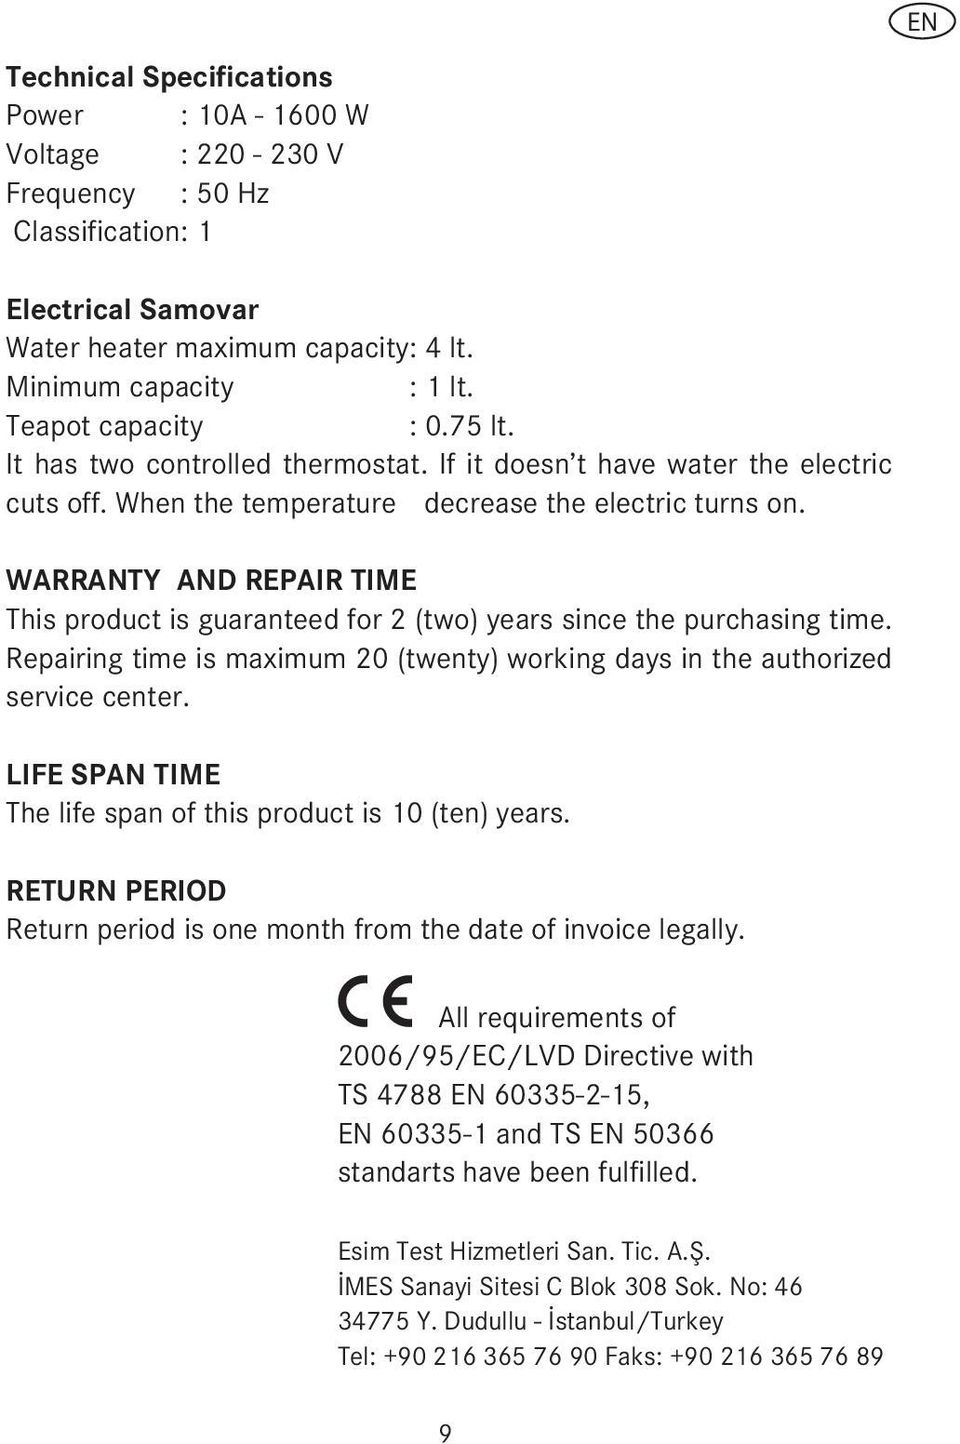 WARRANTY AND REPAIR TIME This product is guaranteed for 2 (two) years since the purchasing time. Repairing time is maximum 20 (twenty) working days in the authorized service center.